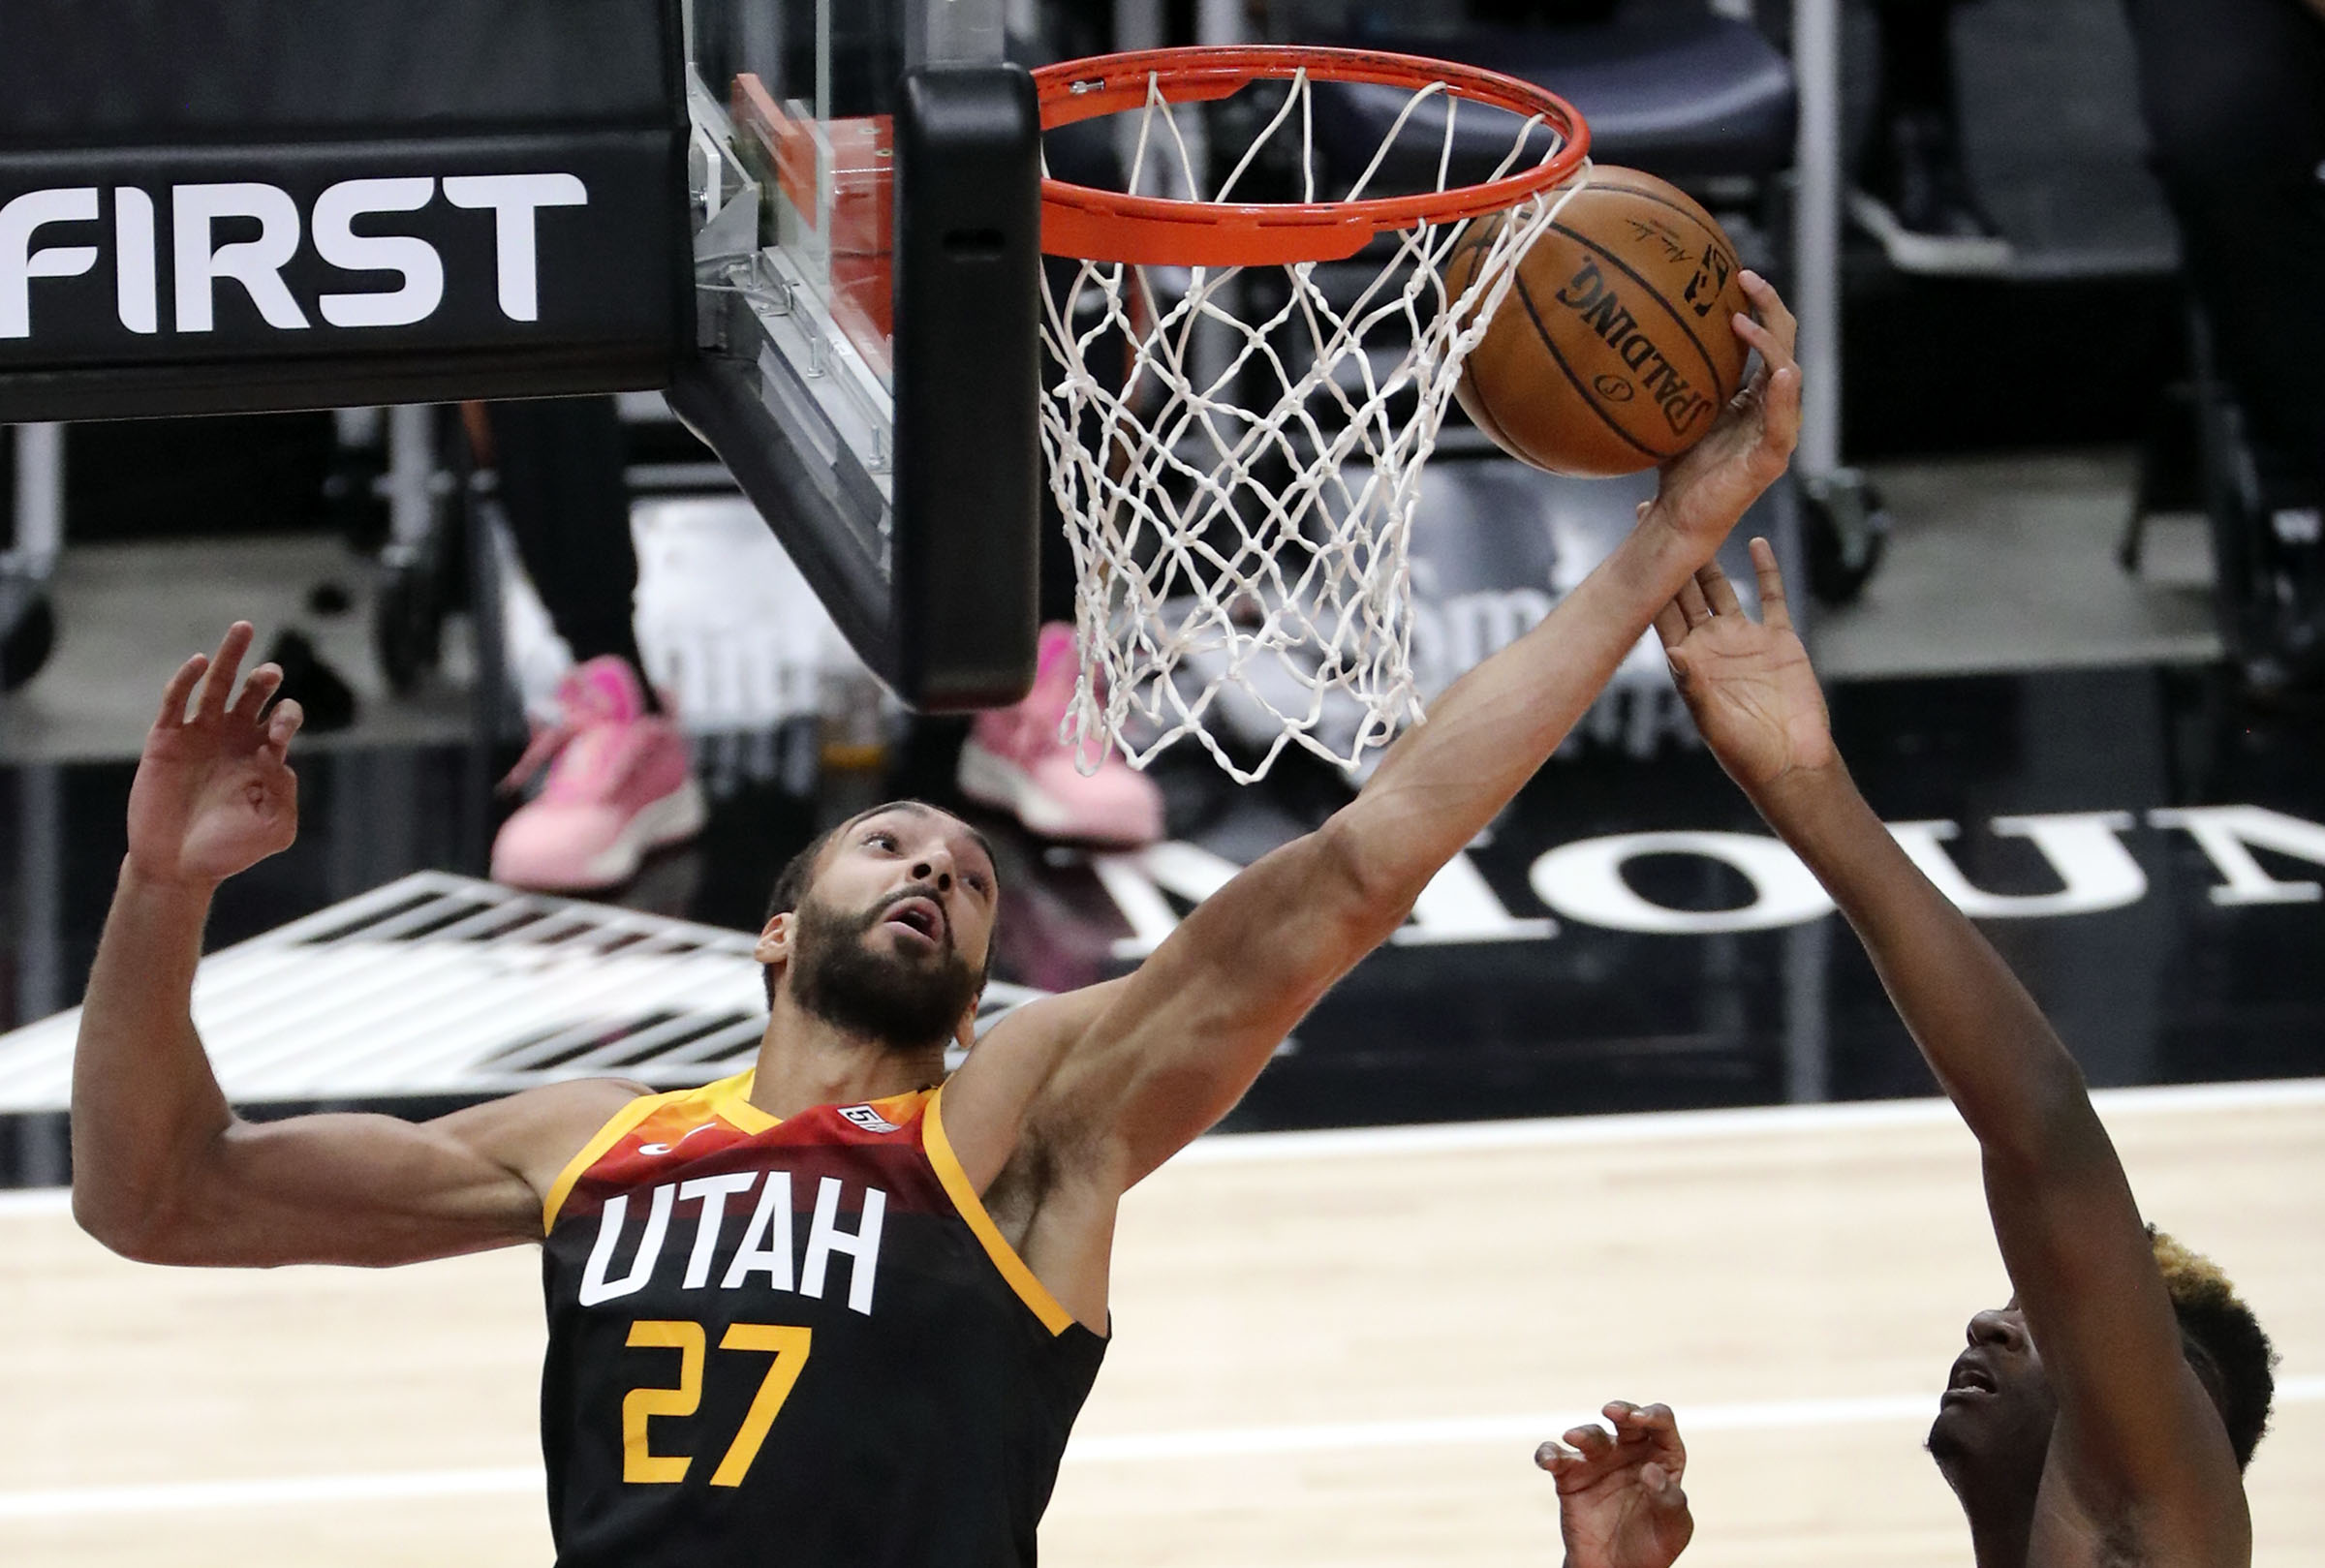 Utah Jazz center Rudy Gobert (27) and Atlanta Hawks center Clint Capela (15) reach for the rebound during an NBA game at Vivint Smart Home Arena in Salt Lake City on Friday, Jan. 15, 2021.